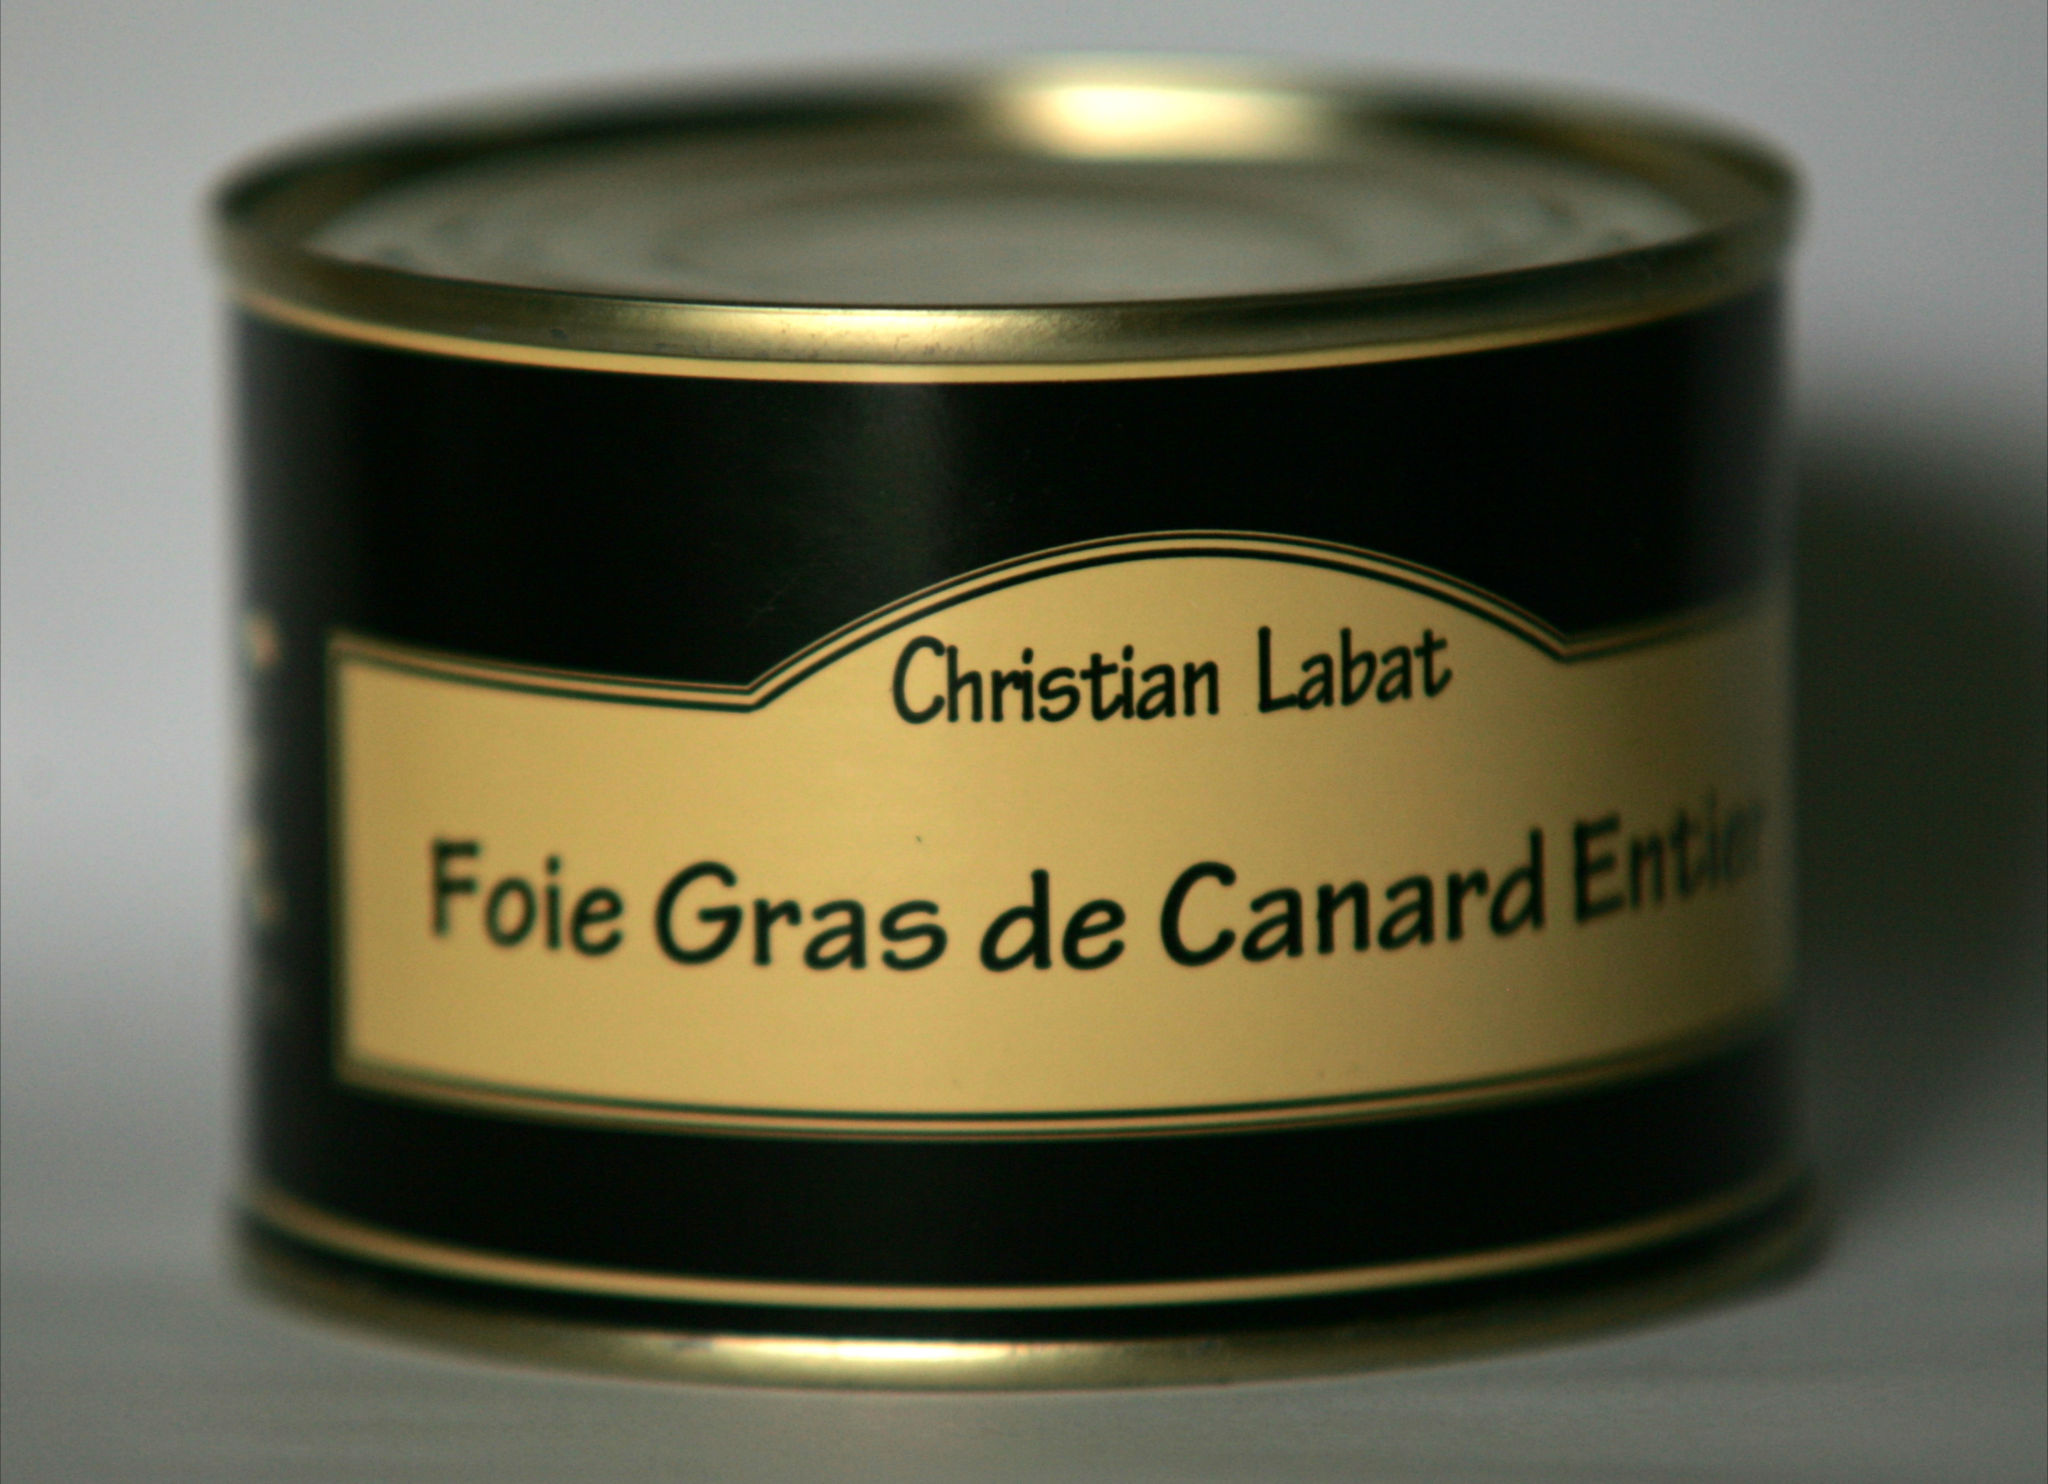 foie gras de canard entier 250 g conserve. Black Bedroom Furniture Sets. Home Design Ideas